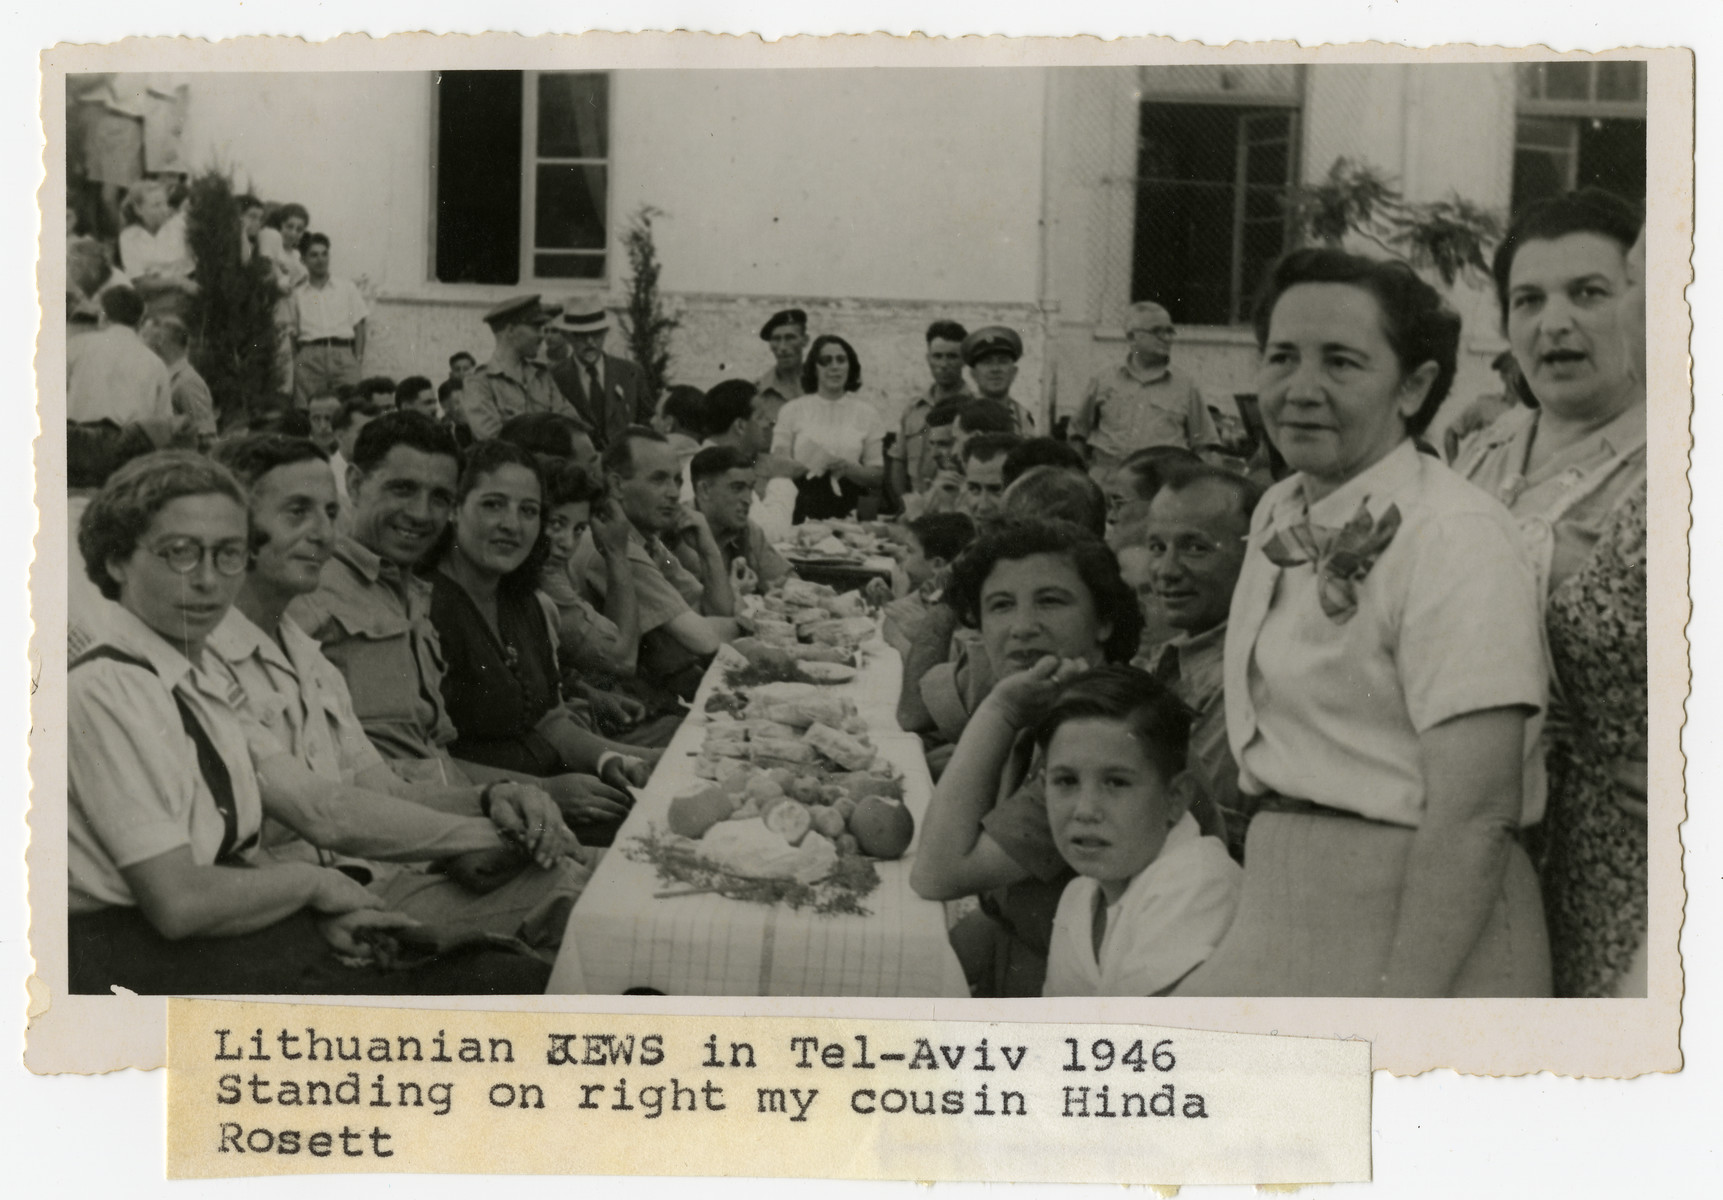 Lithuanian immigrants gather for a celebration in Tel Aviv.  Hinda Rossett (the cousin of Paul Bagriansky) is standing on the right.